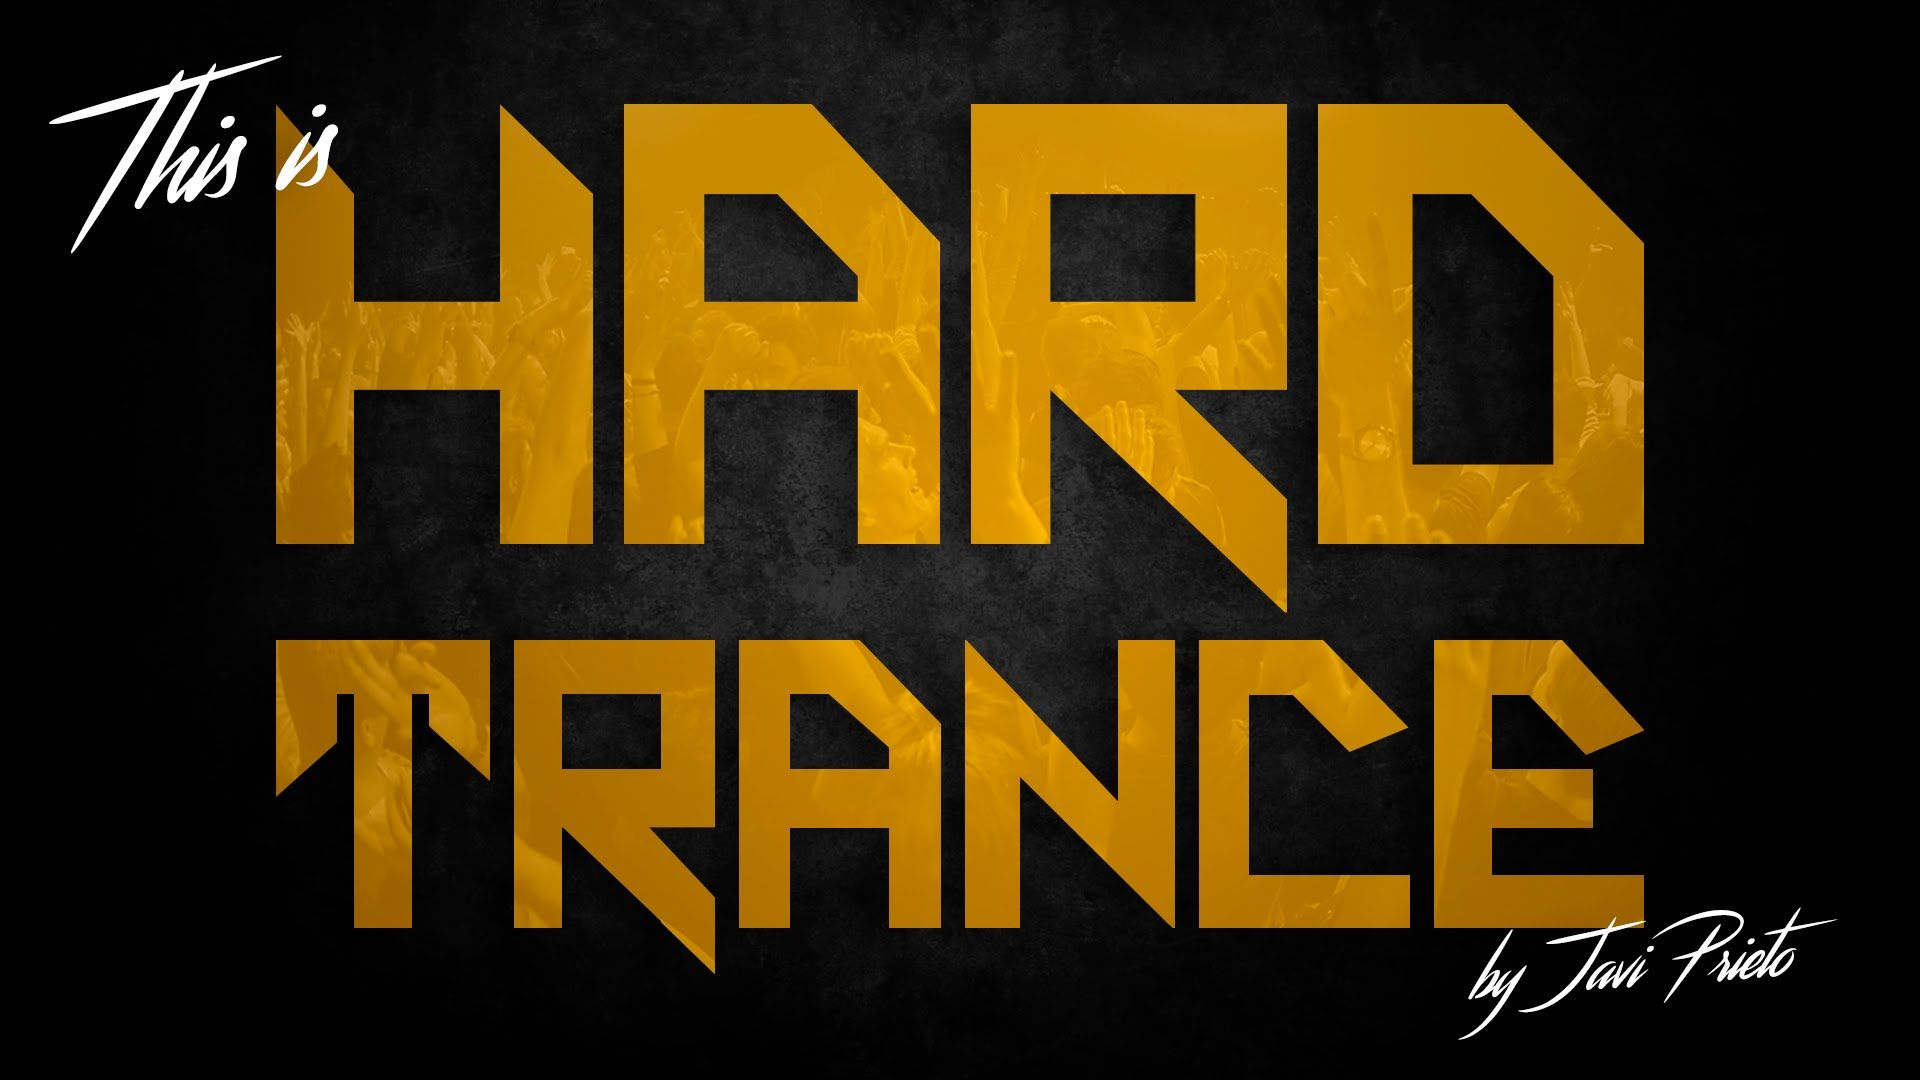 This is Hard Trance! #1